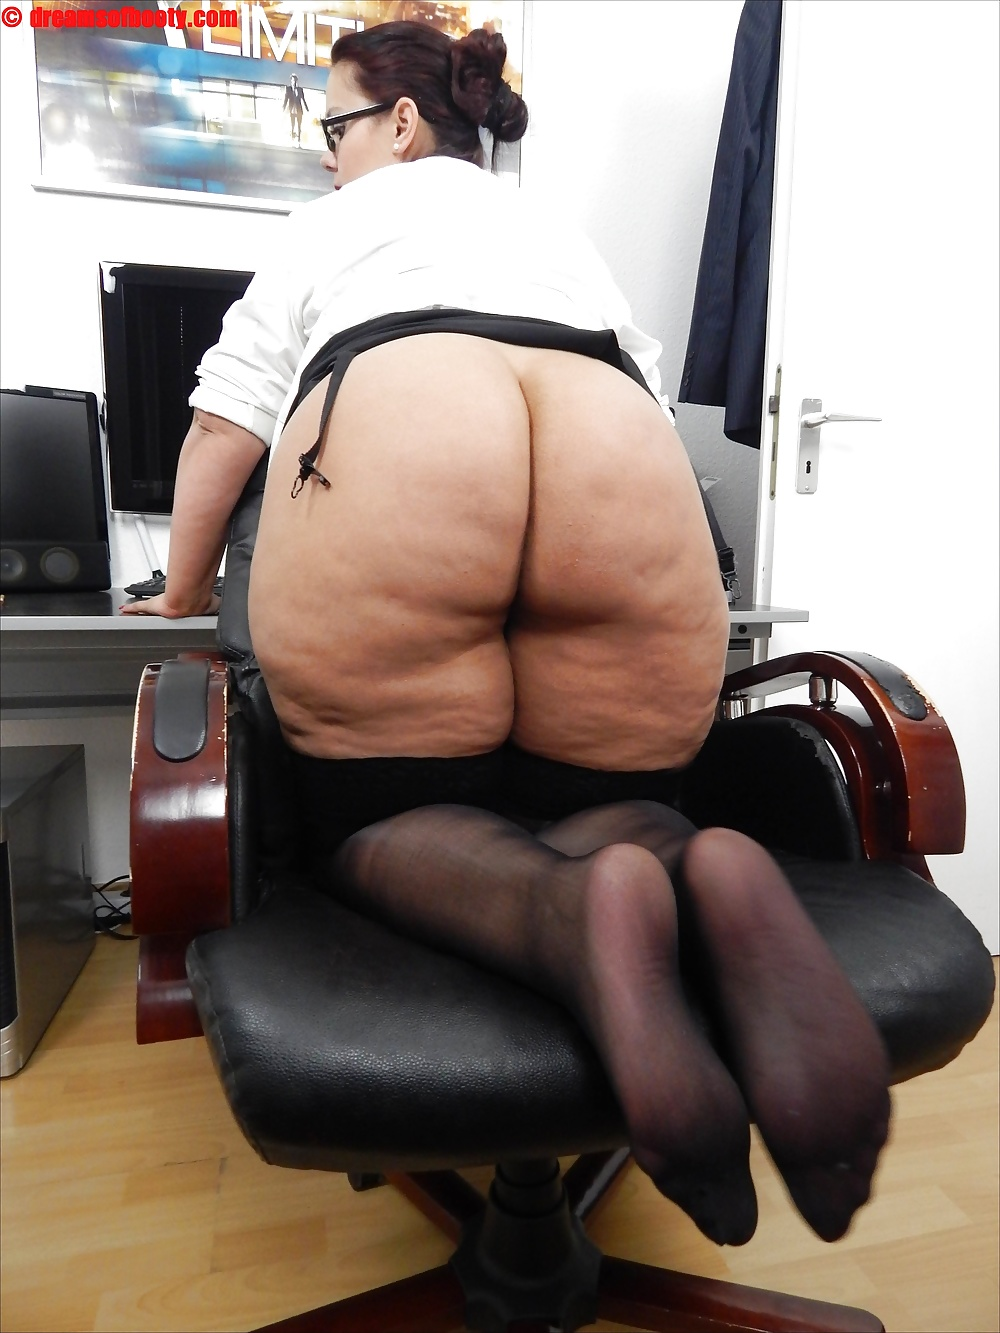 Chubby secretary clips, mom first time amateur lesbian video